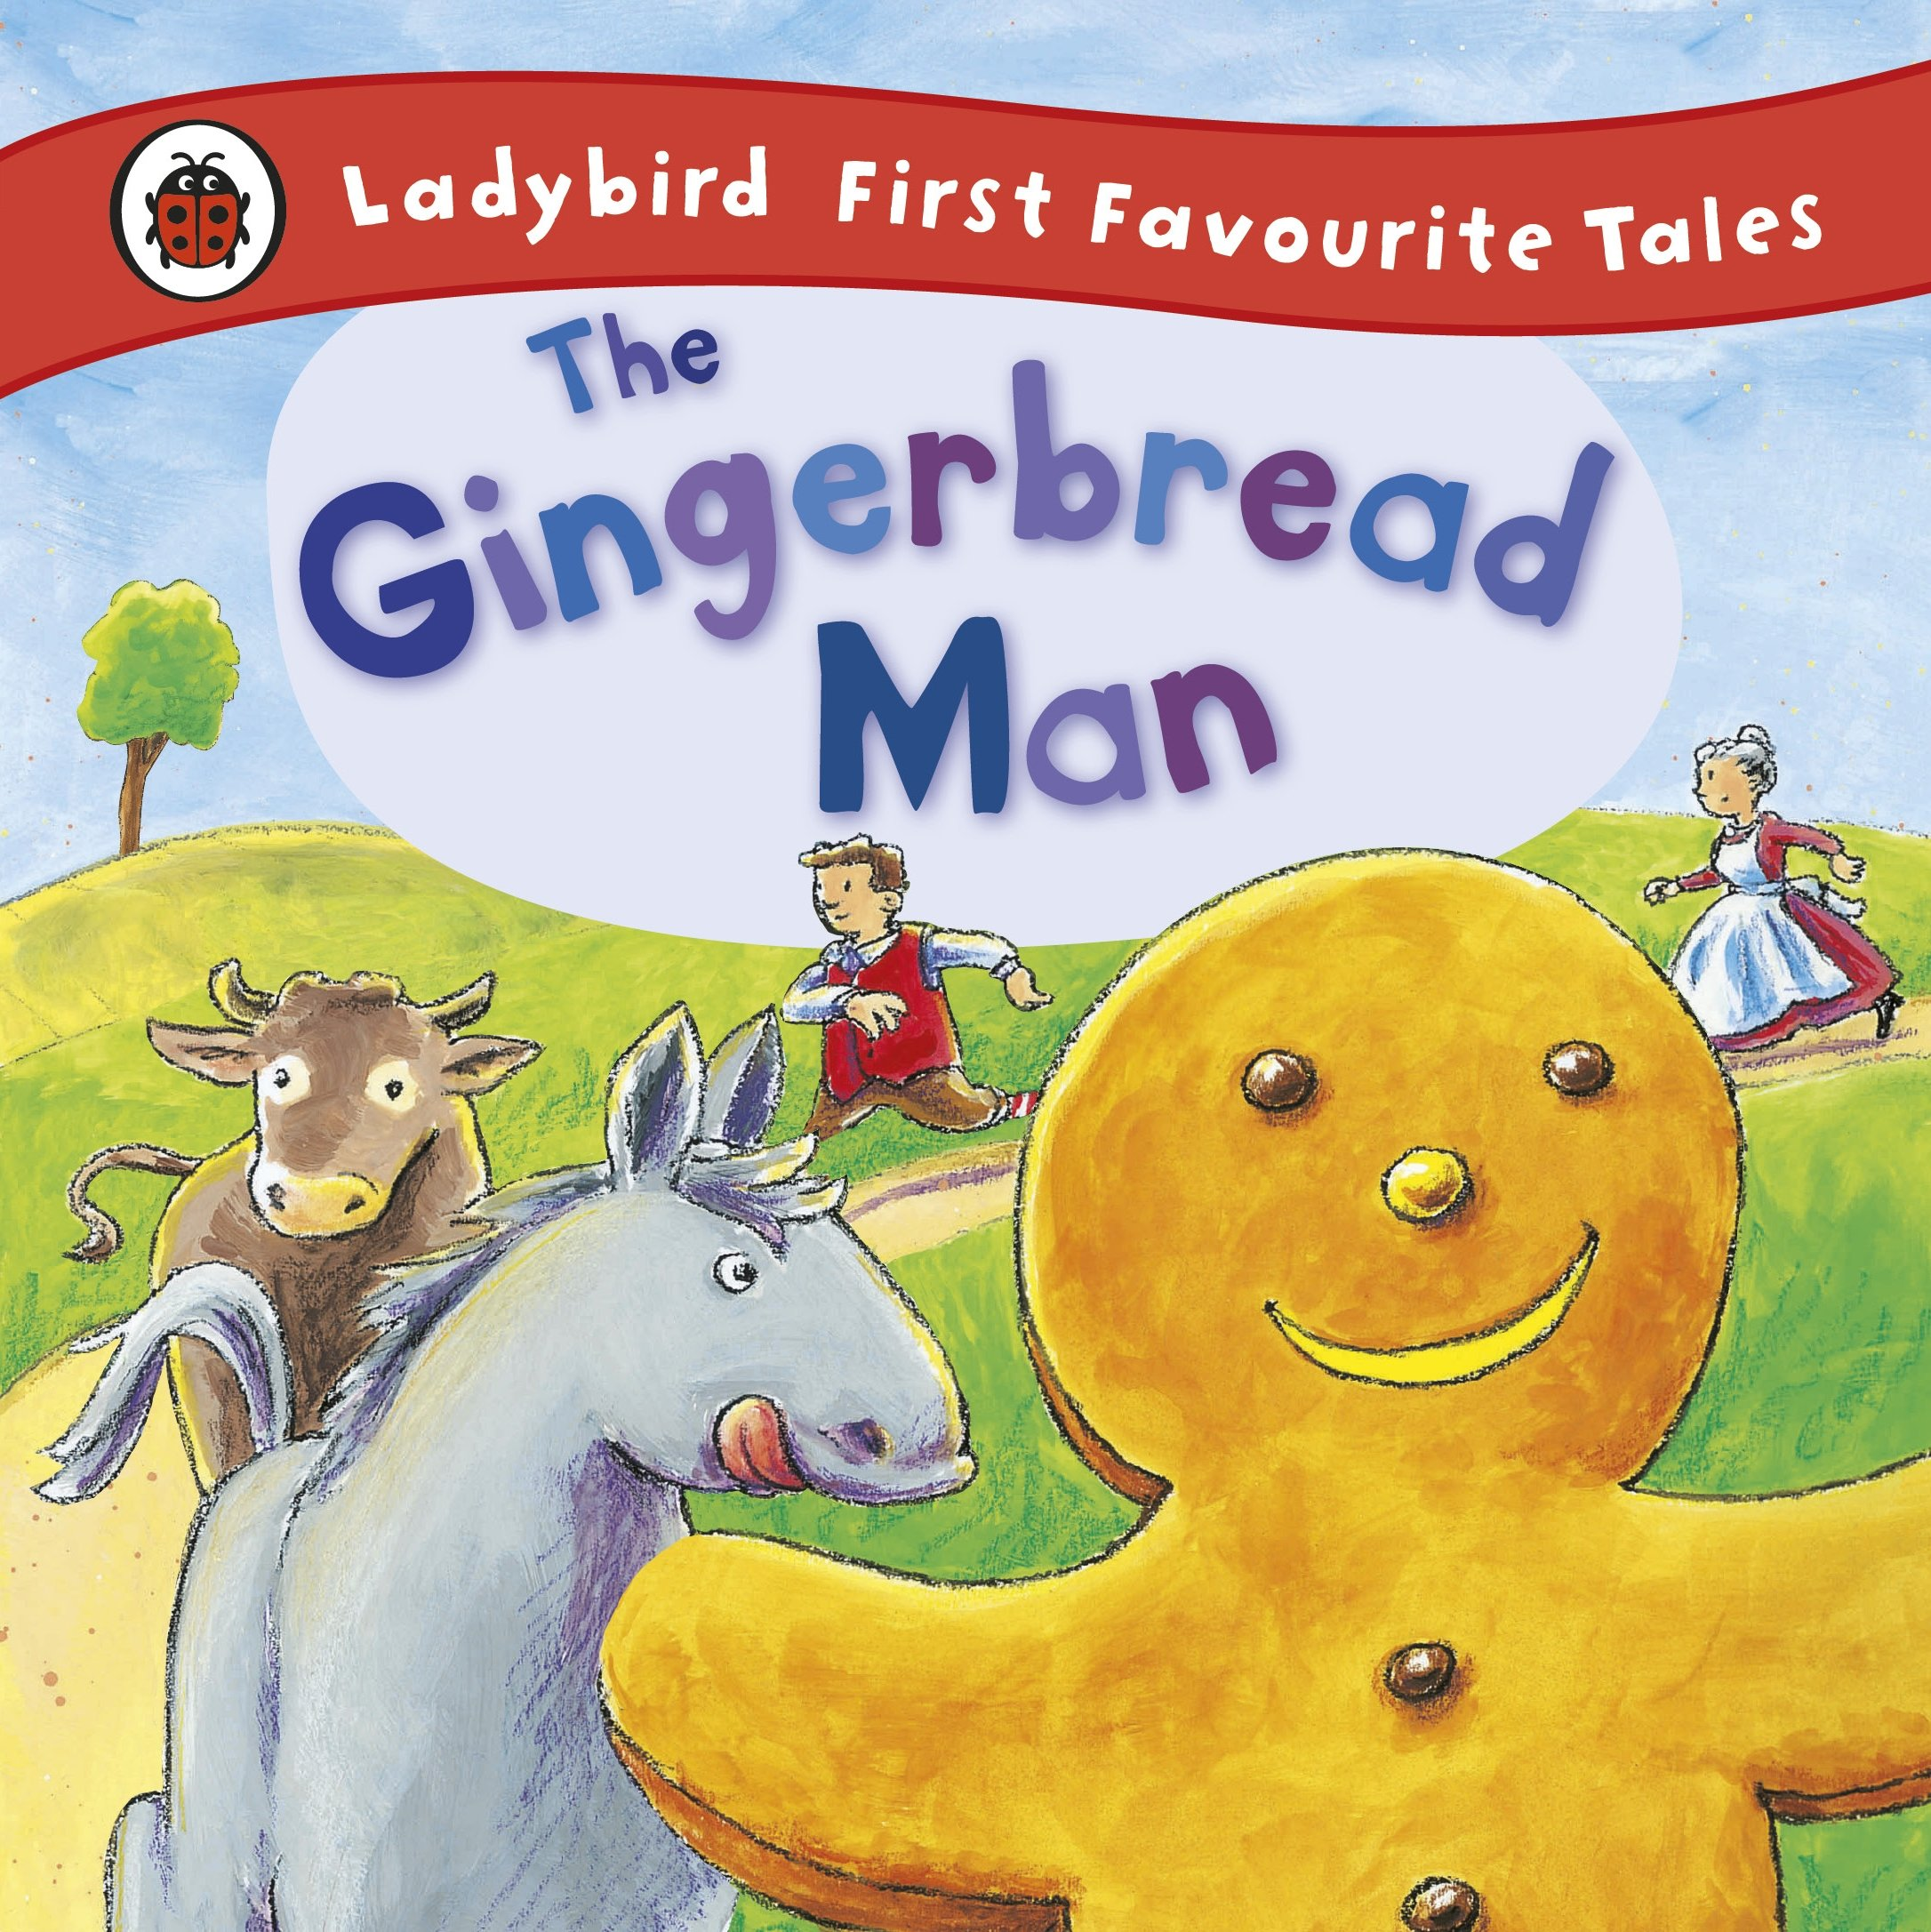 The Gingerbread Man: Ladybird First Favourite Tales: Amazon.co.uk ...